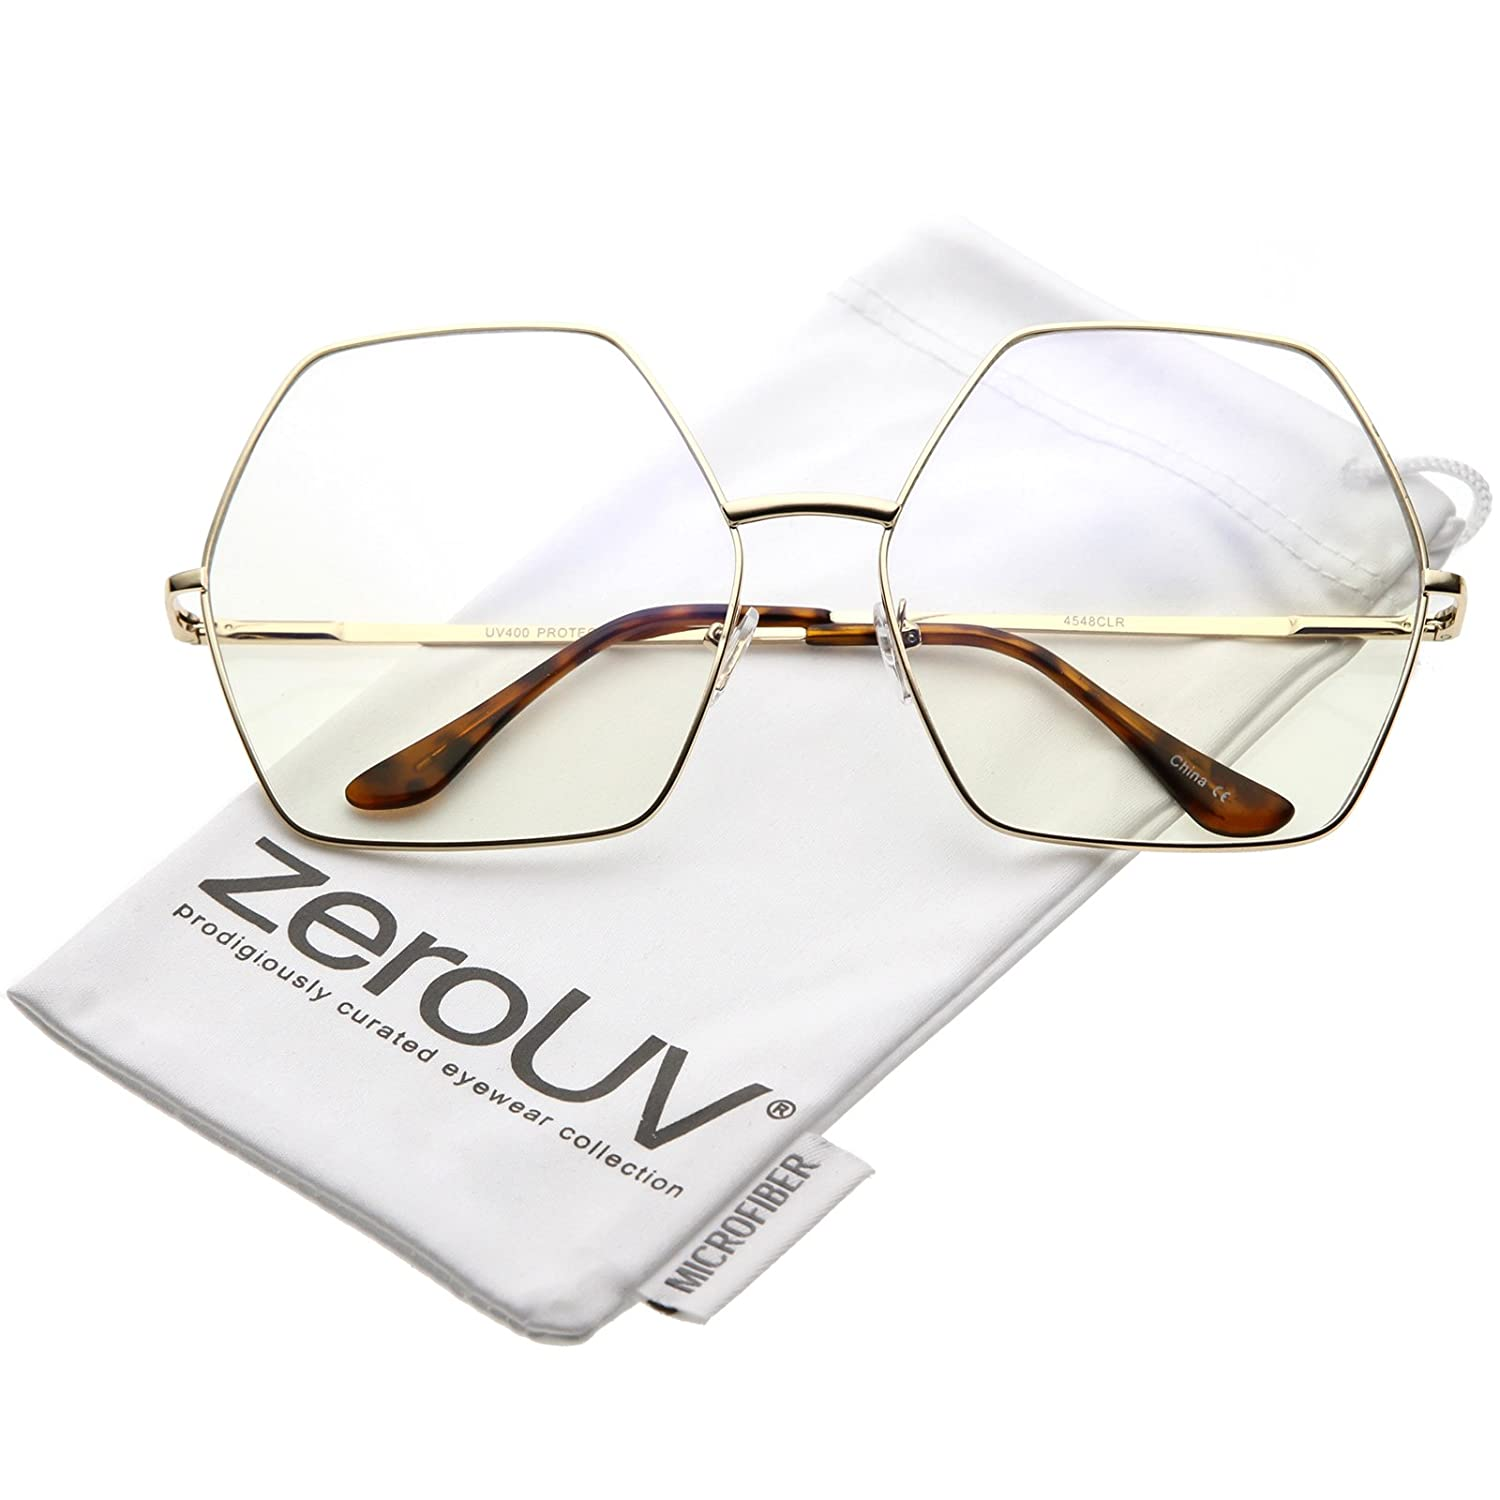 67c6e661d5 Amazon.com  zeroUV - Oversize Hexagonal Clear Lens Eye Glasses 67mm  (Gold Clear)  Clothing